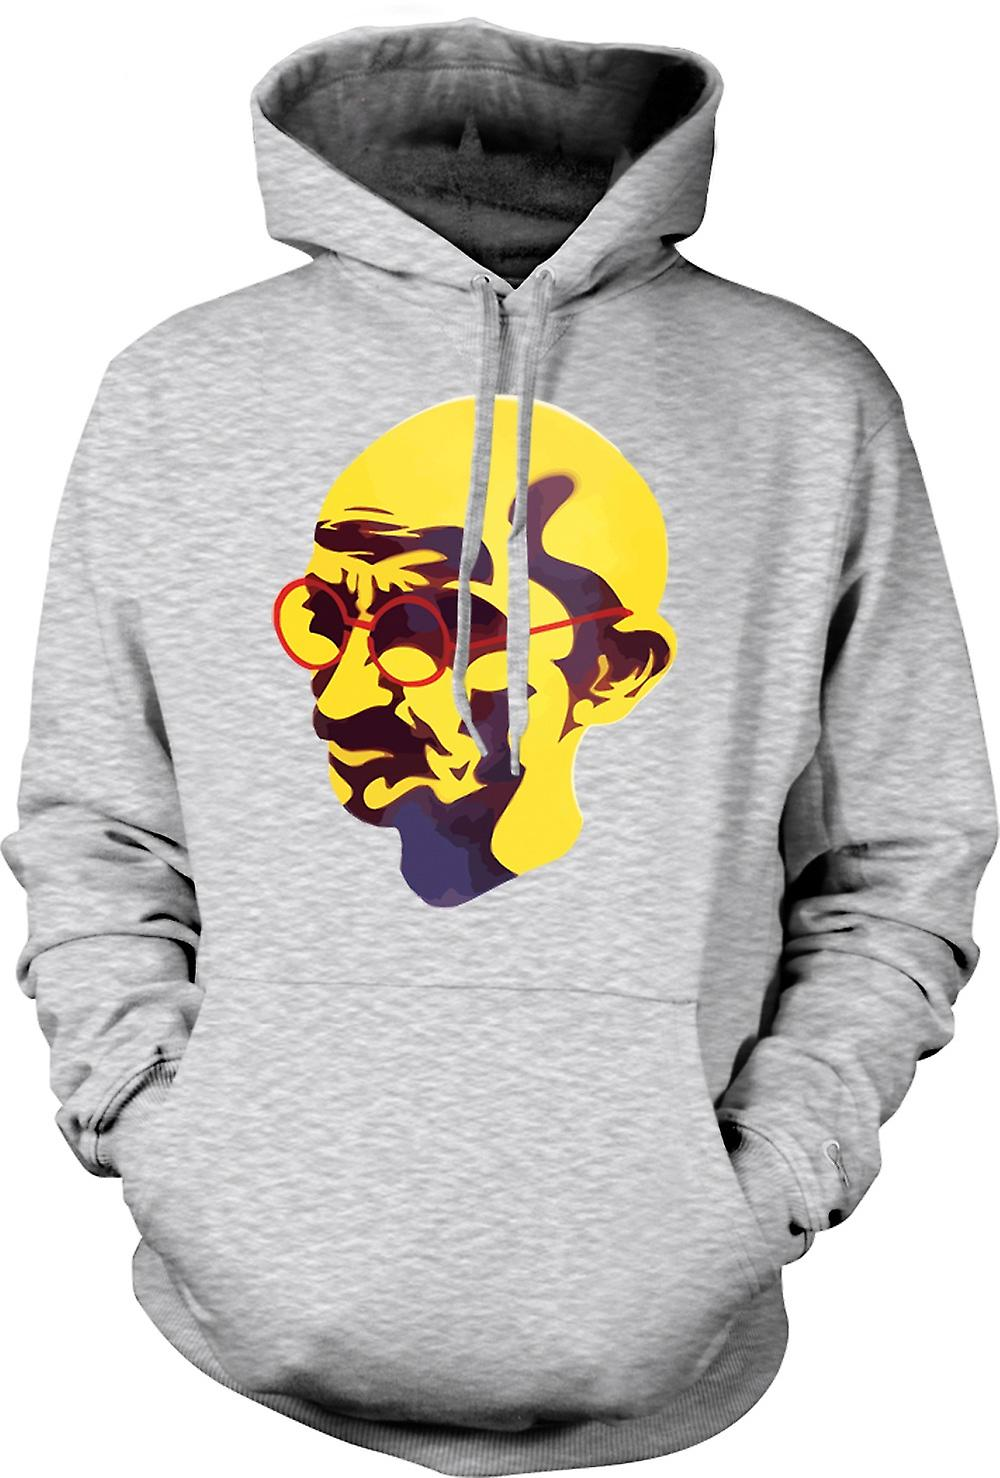 Mens Hoodie - Mahatma Gandhi - Indian Icon